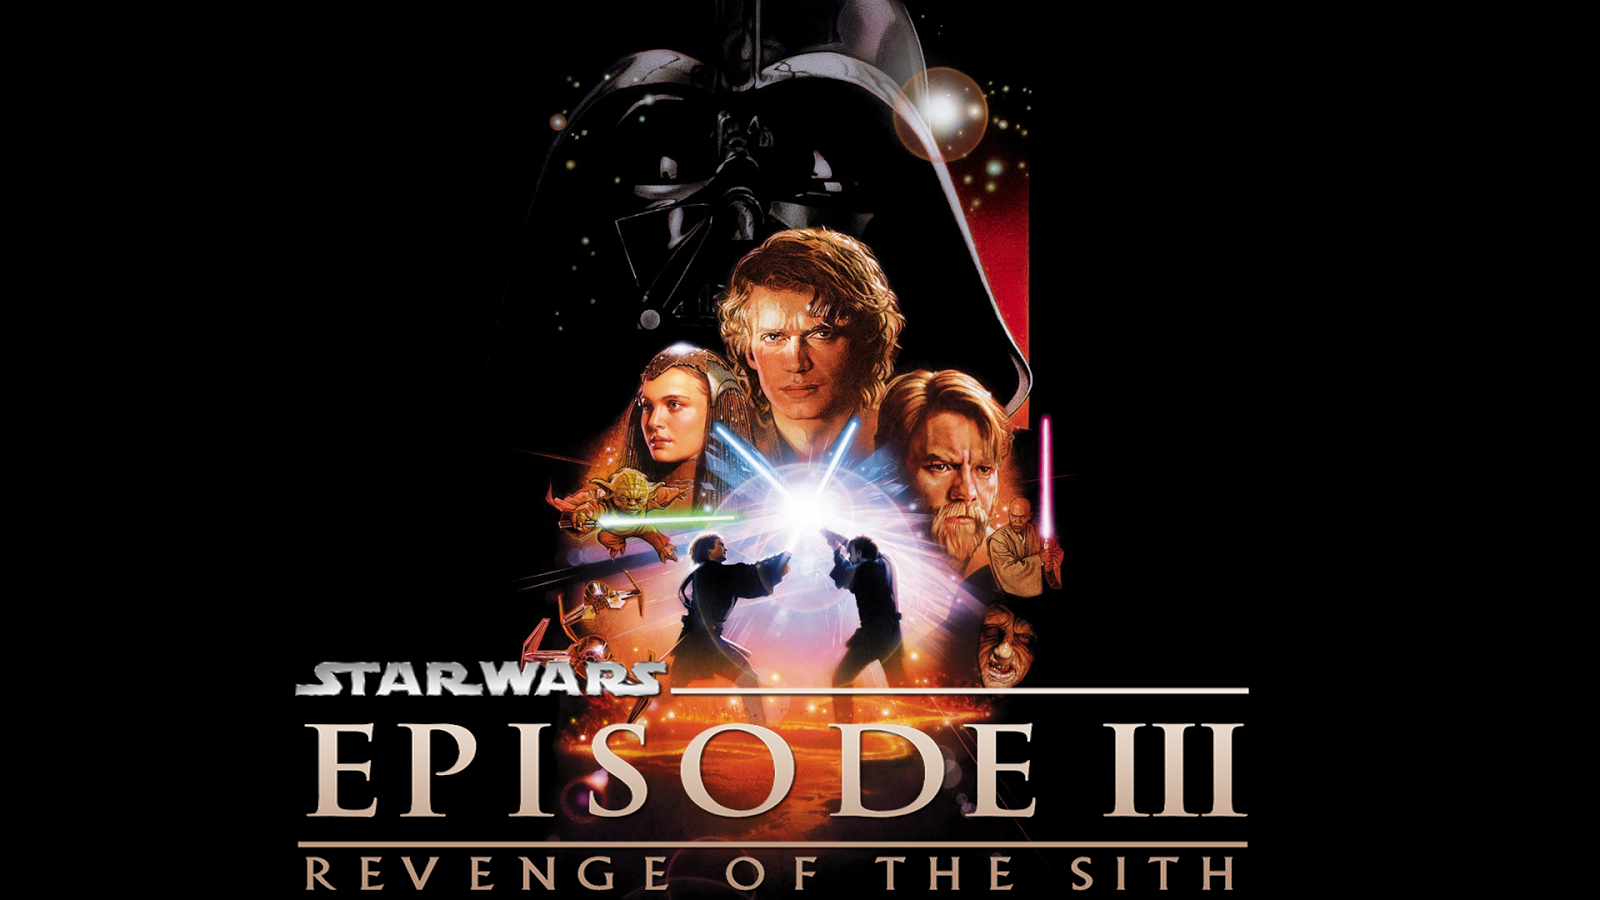 Star Wars Episode Iii Revenge Of The Sith Movie Review